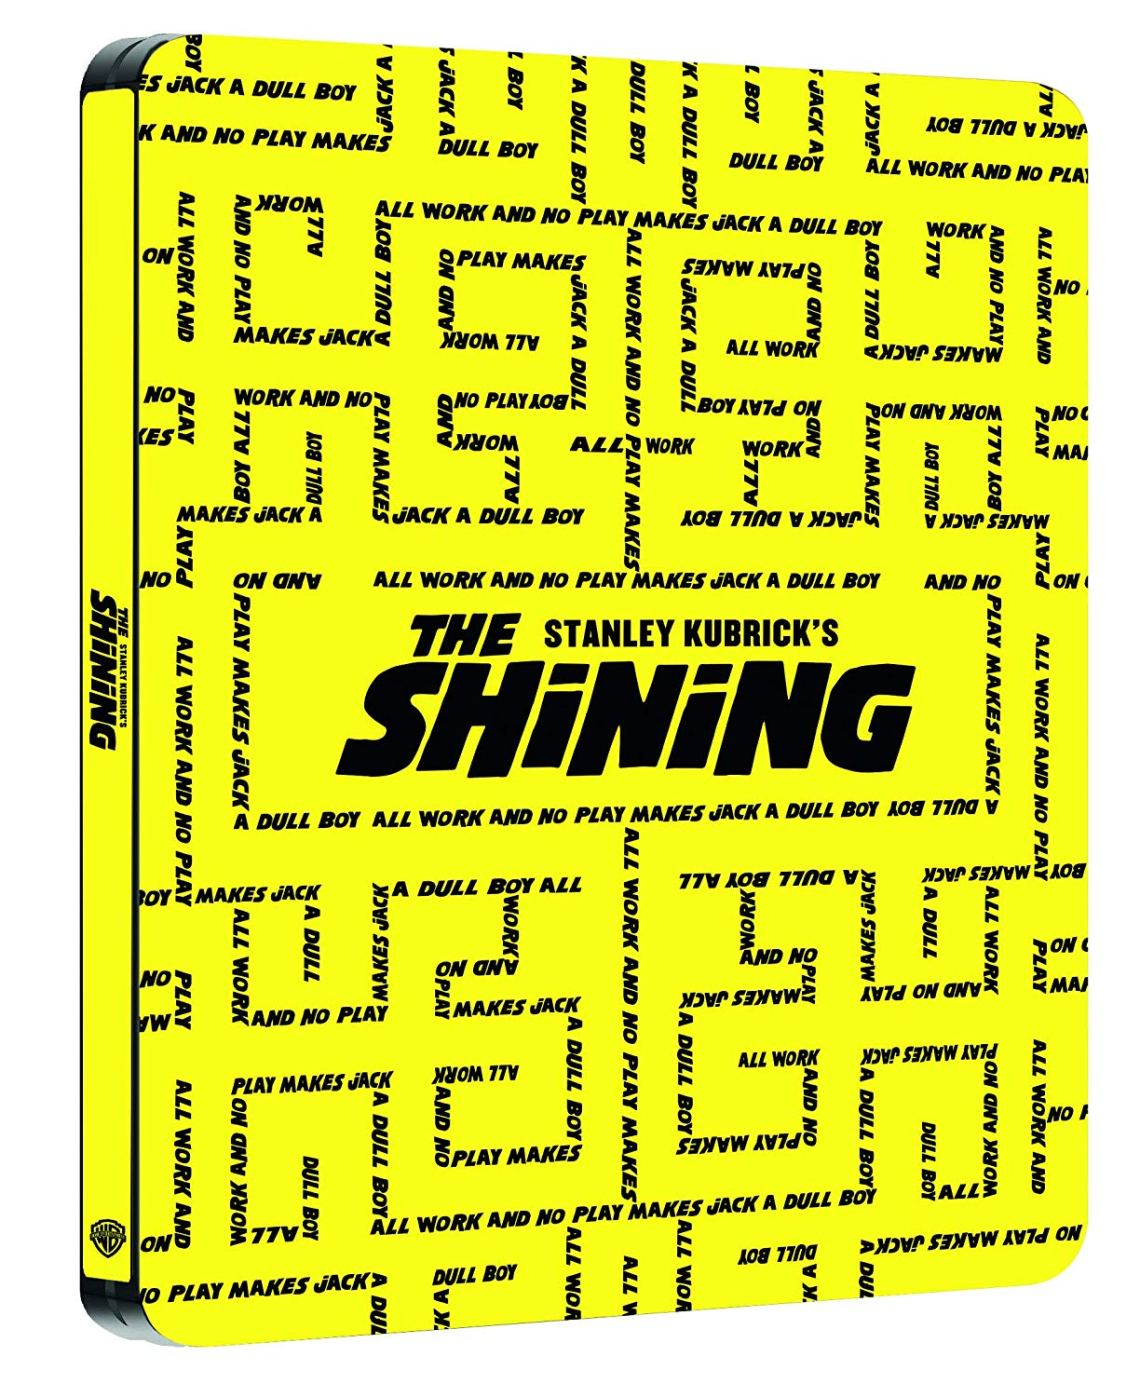 shining extended